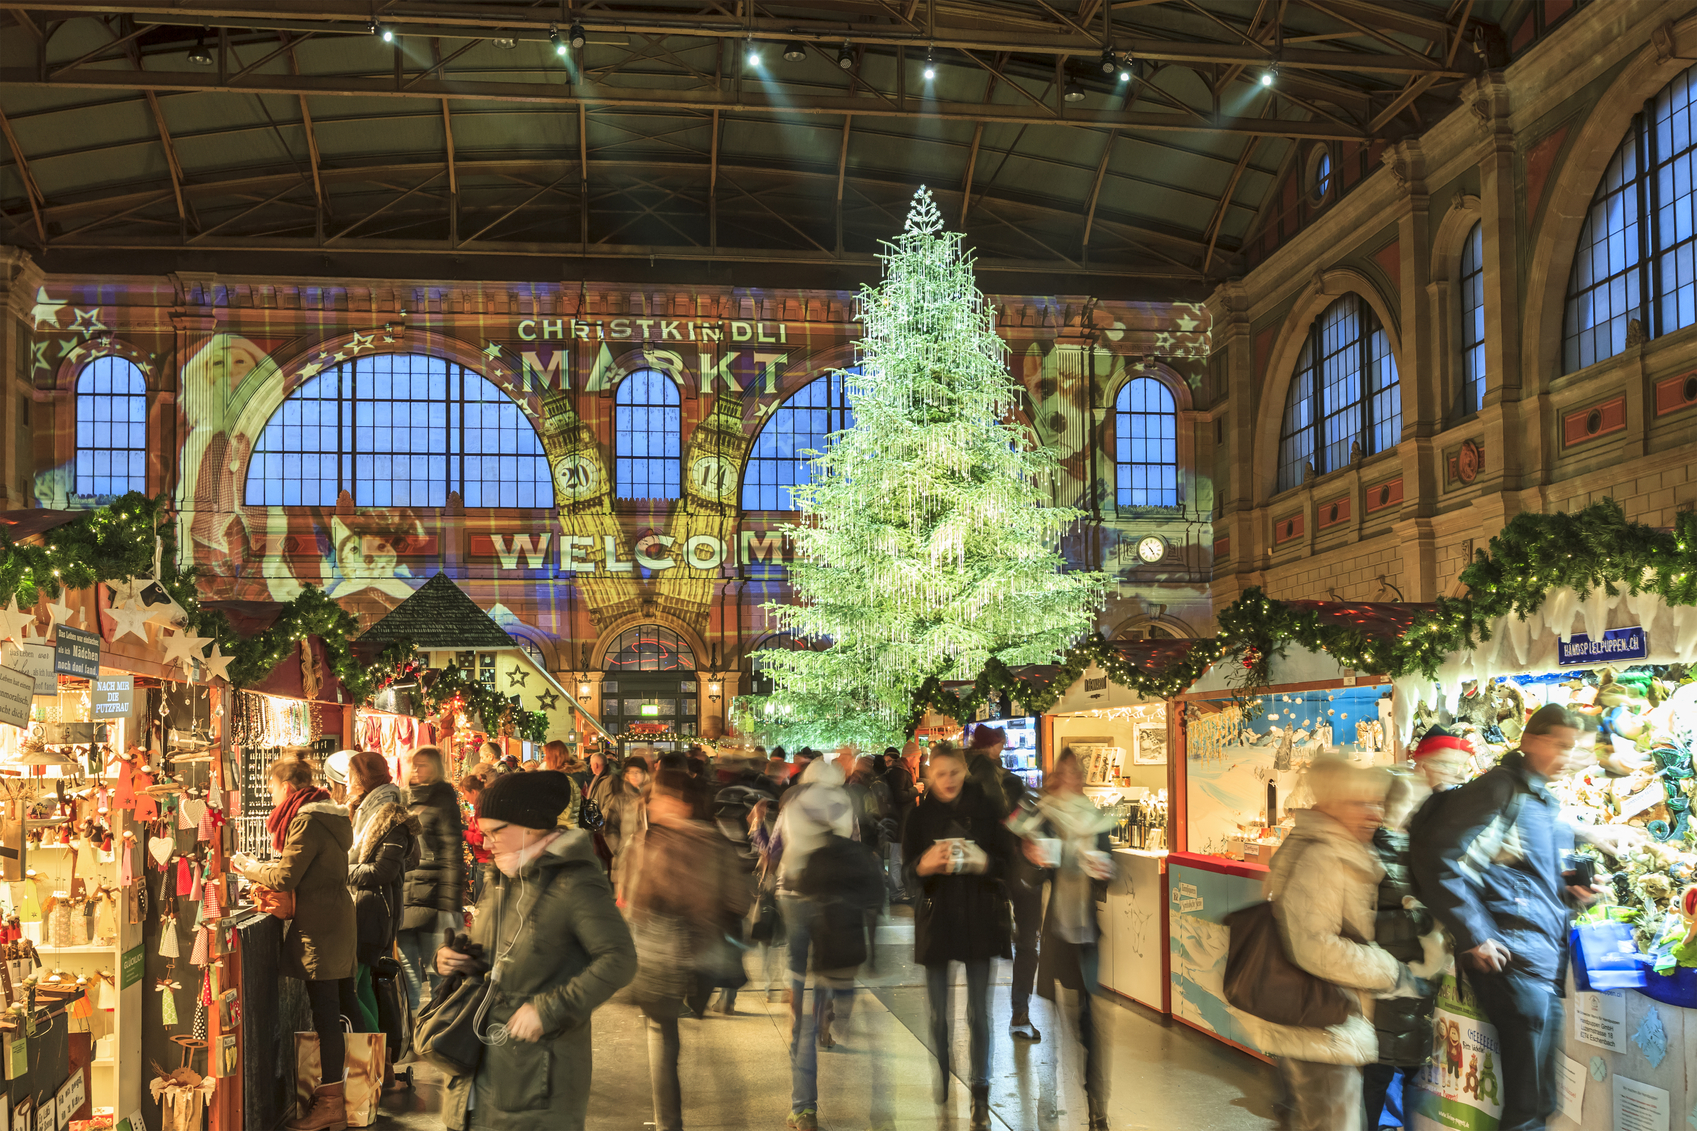 Zurich, Switzerland - December 11, 2014: The Christmas market in the Central Station in Zurich hosts the largest indoor Christmas market in Europe with a large Christmas tree sparkling with over 7,000 Swarovski. People can stroll among stalls of gifts, crafts, sweets and mulled wine.